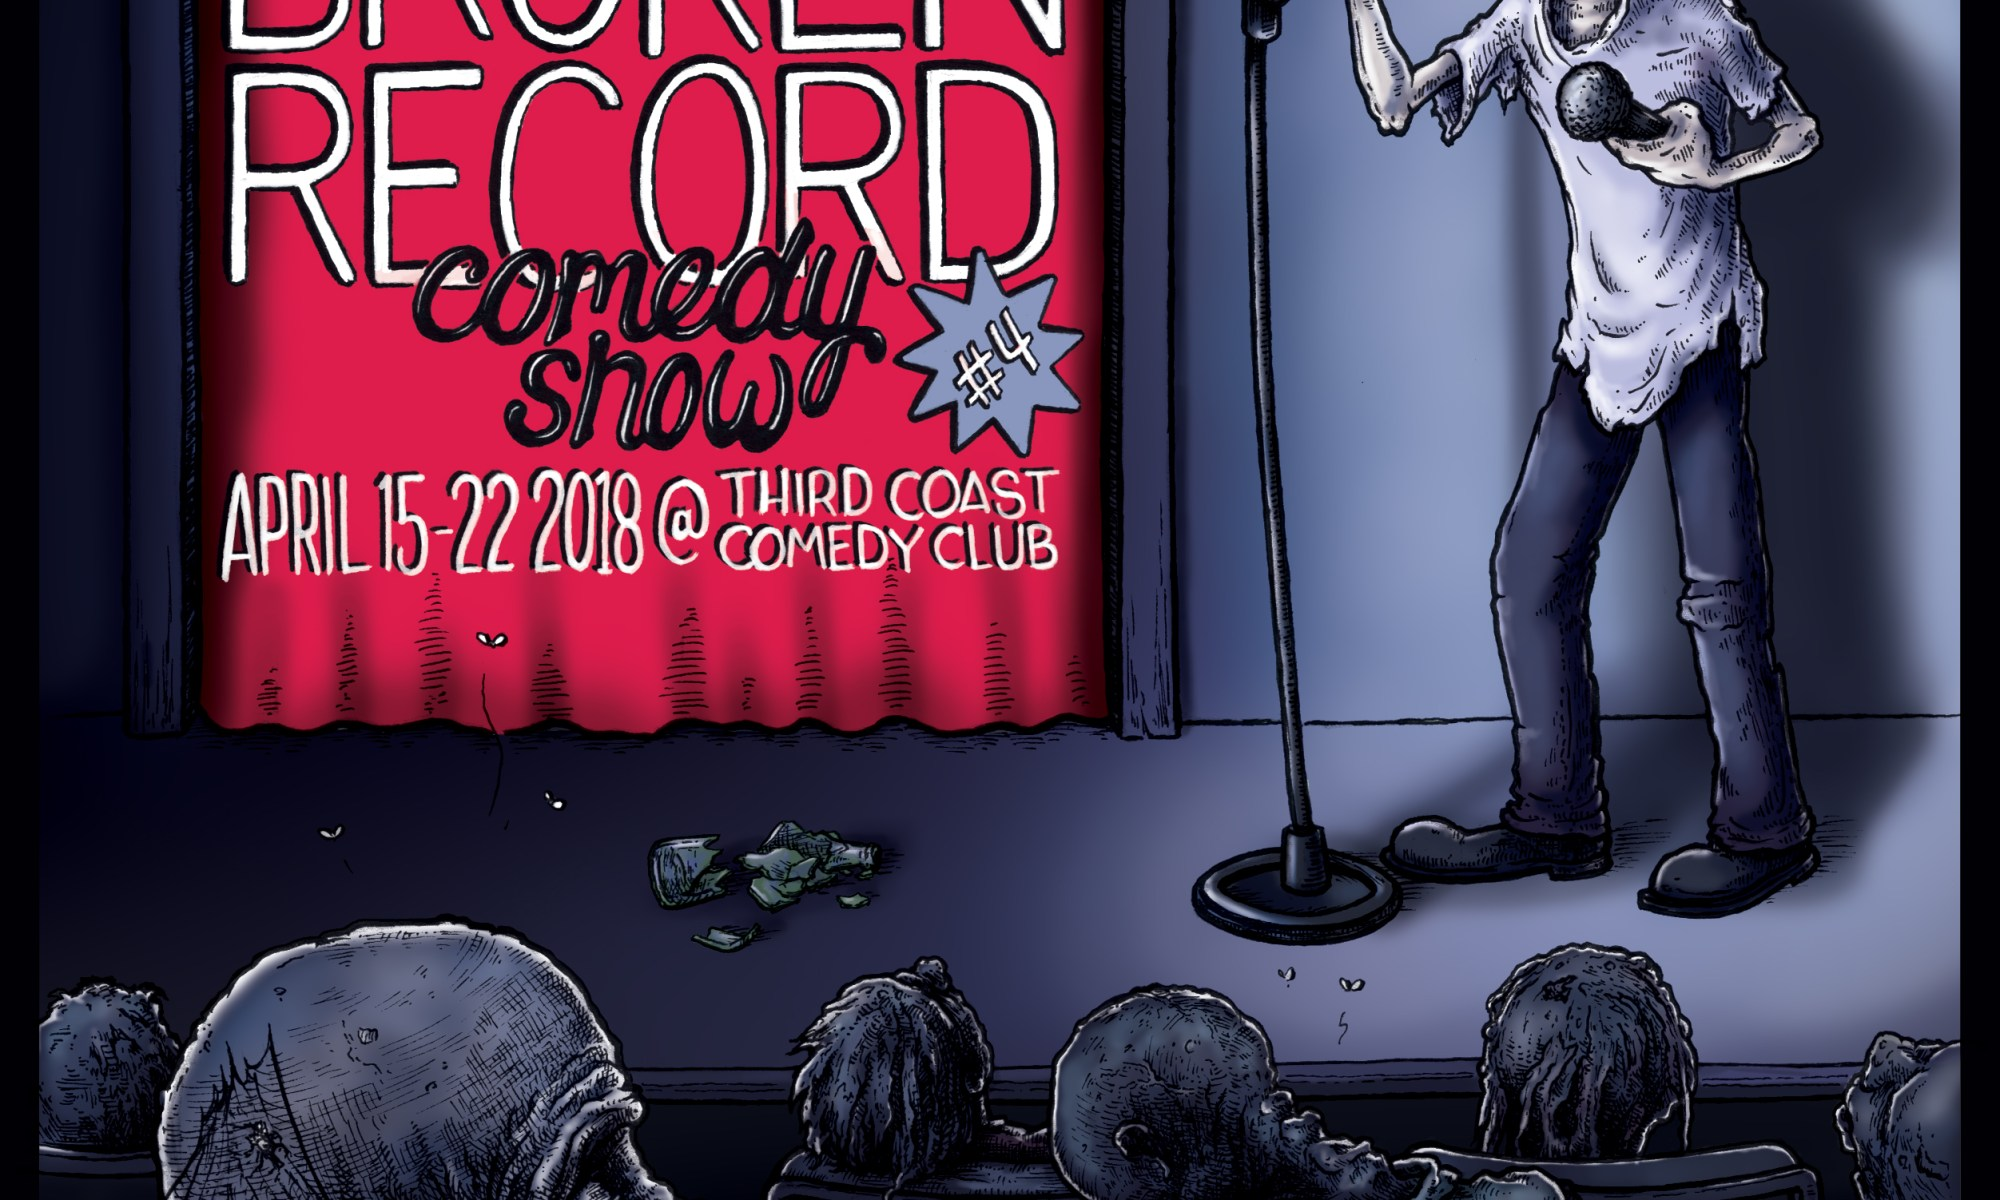 #BrokenRecordShow 4: April 15-22, 2018 at Third Coast Comedy Club